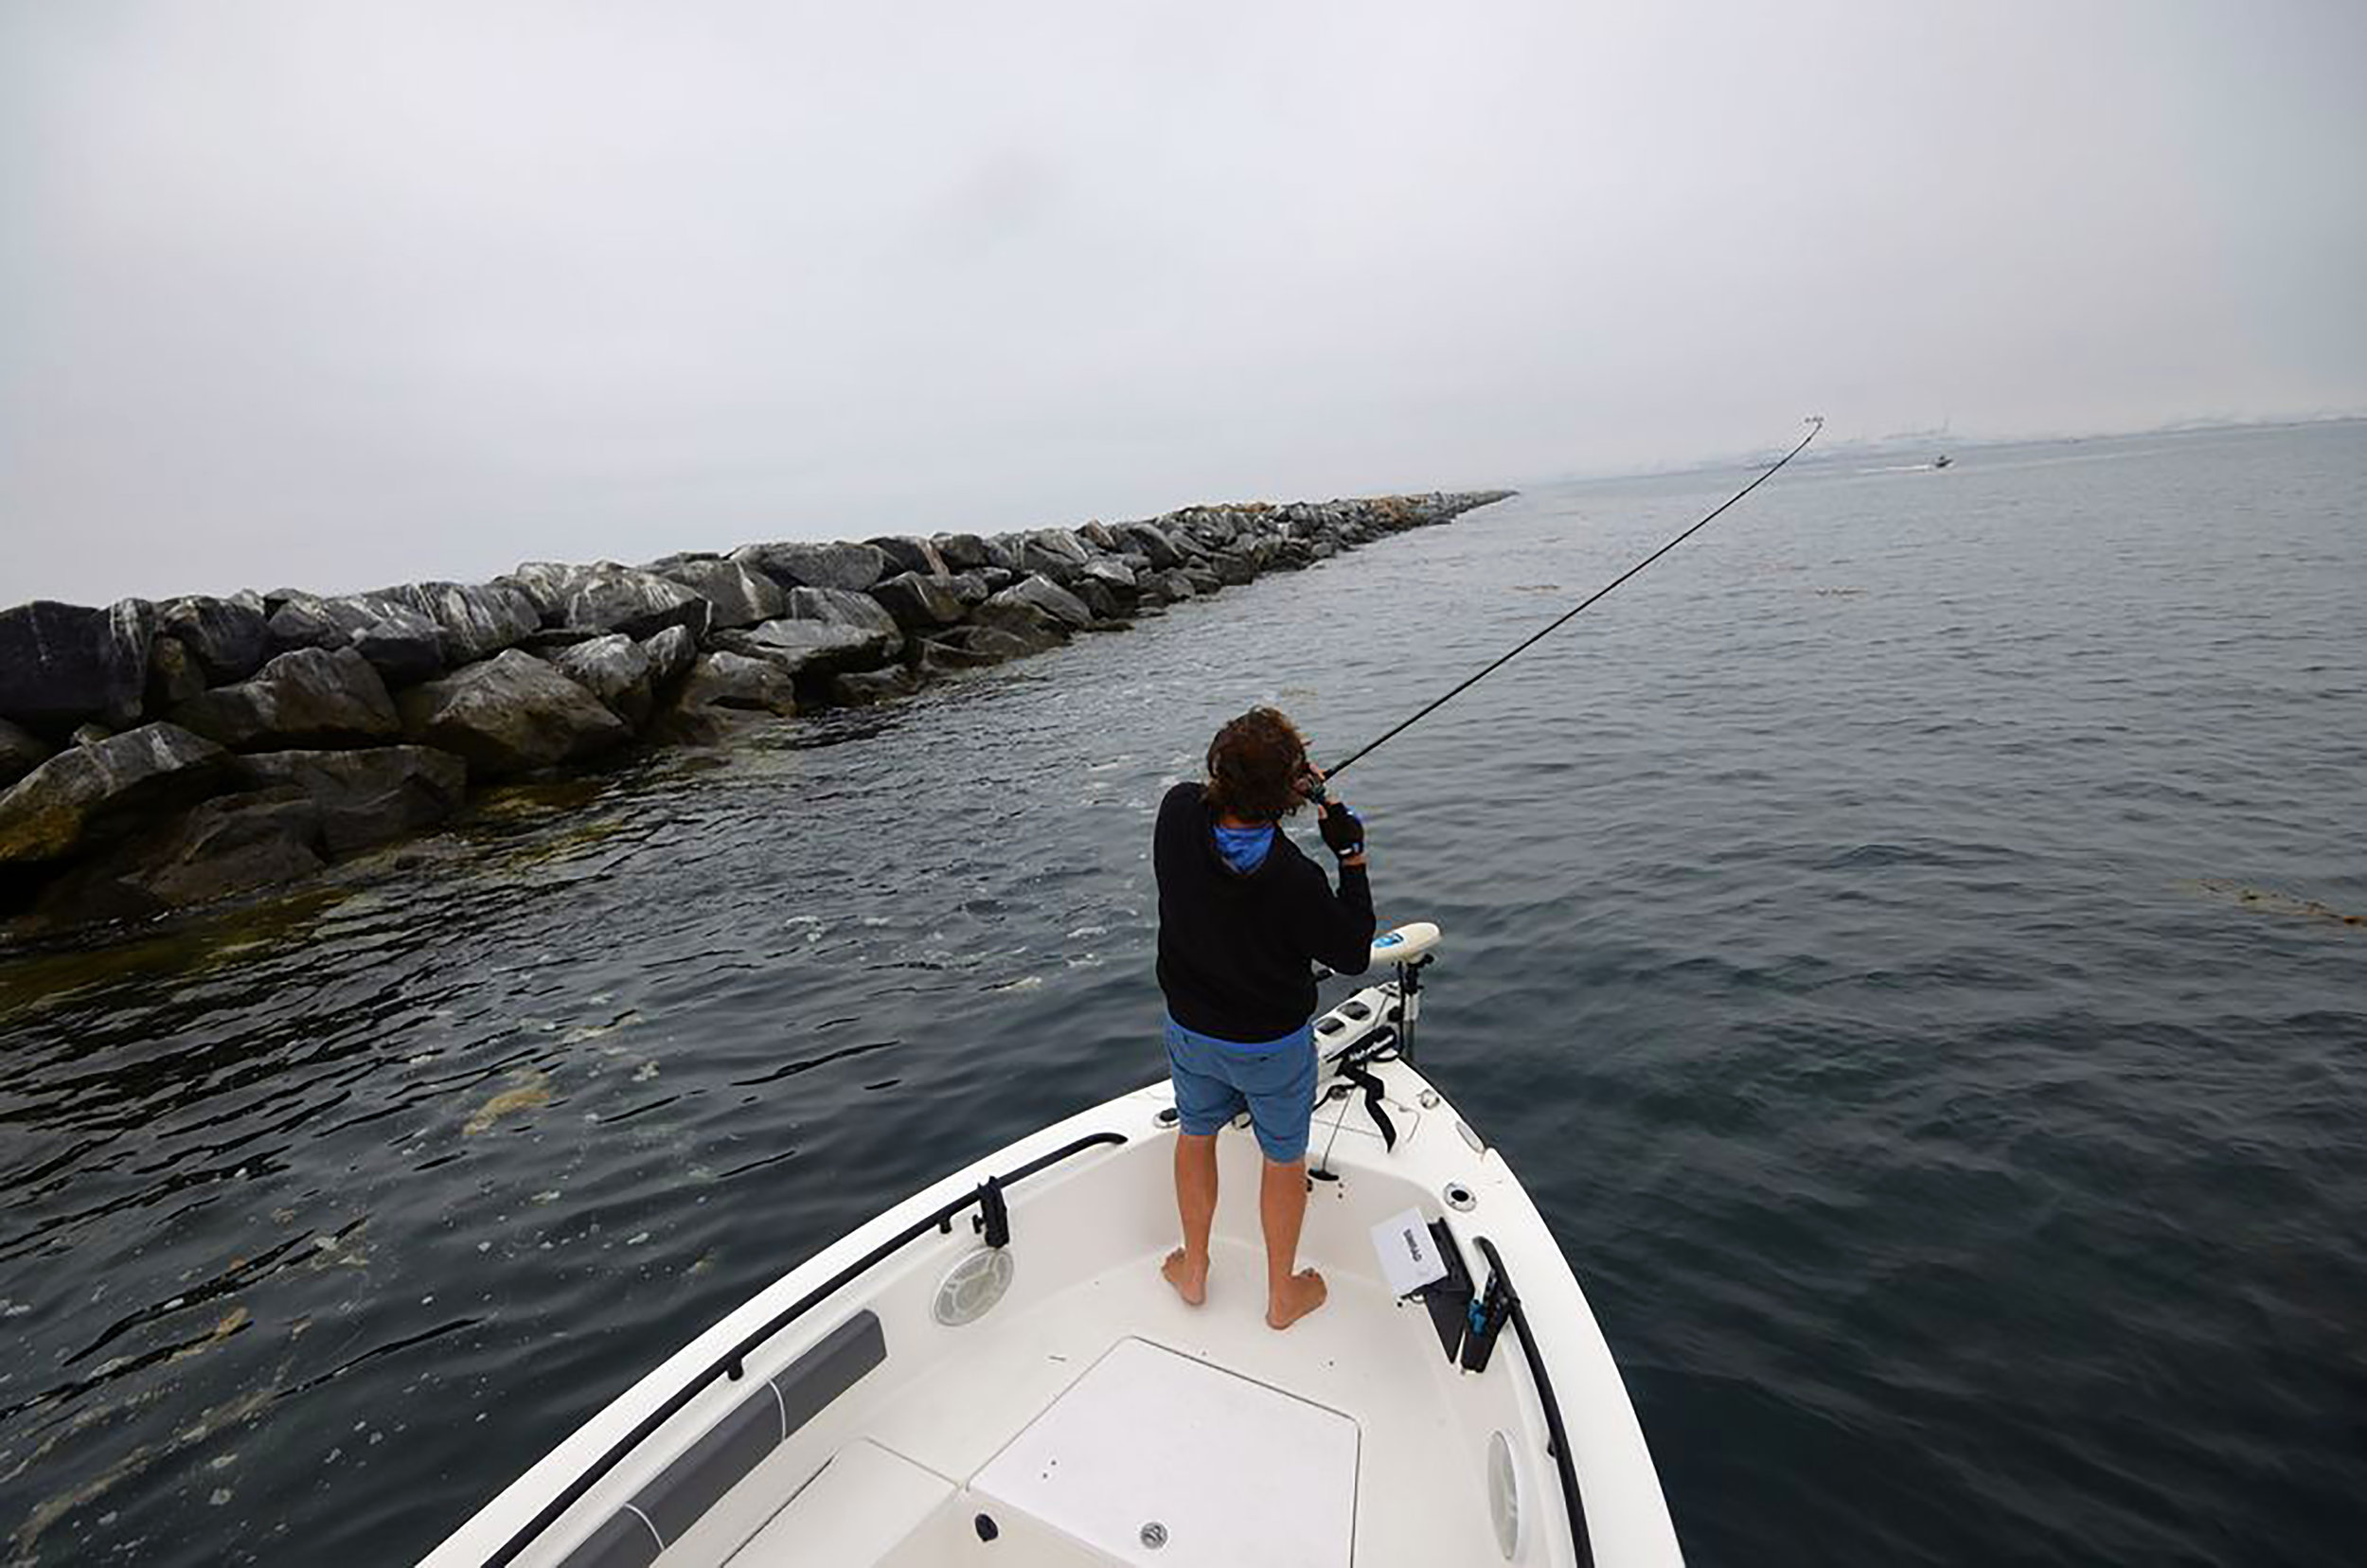 The 8.3-mile-long Federal Breakwater protecting Los Angeles and Long Beach harbors provides ideal hunting habitat for barred sand bass, kelp bass and other predatory fish. Erik Landesfeind